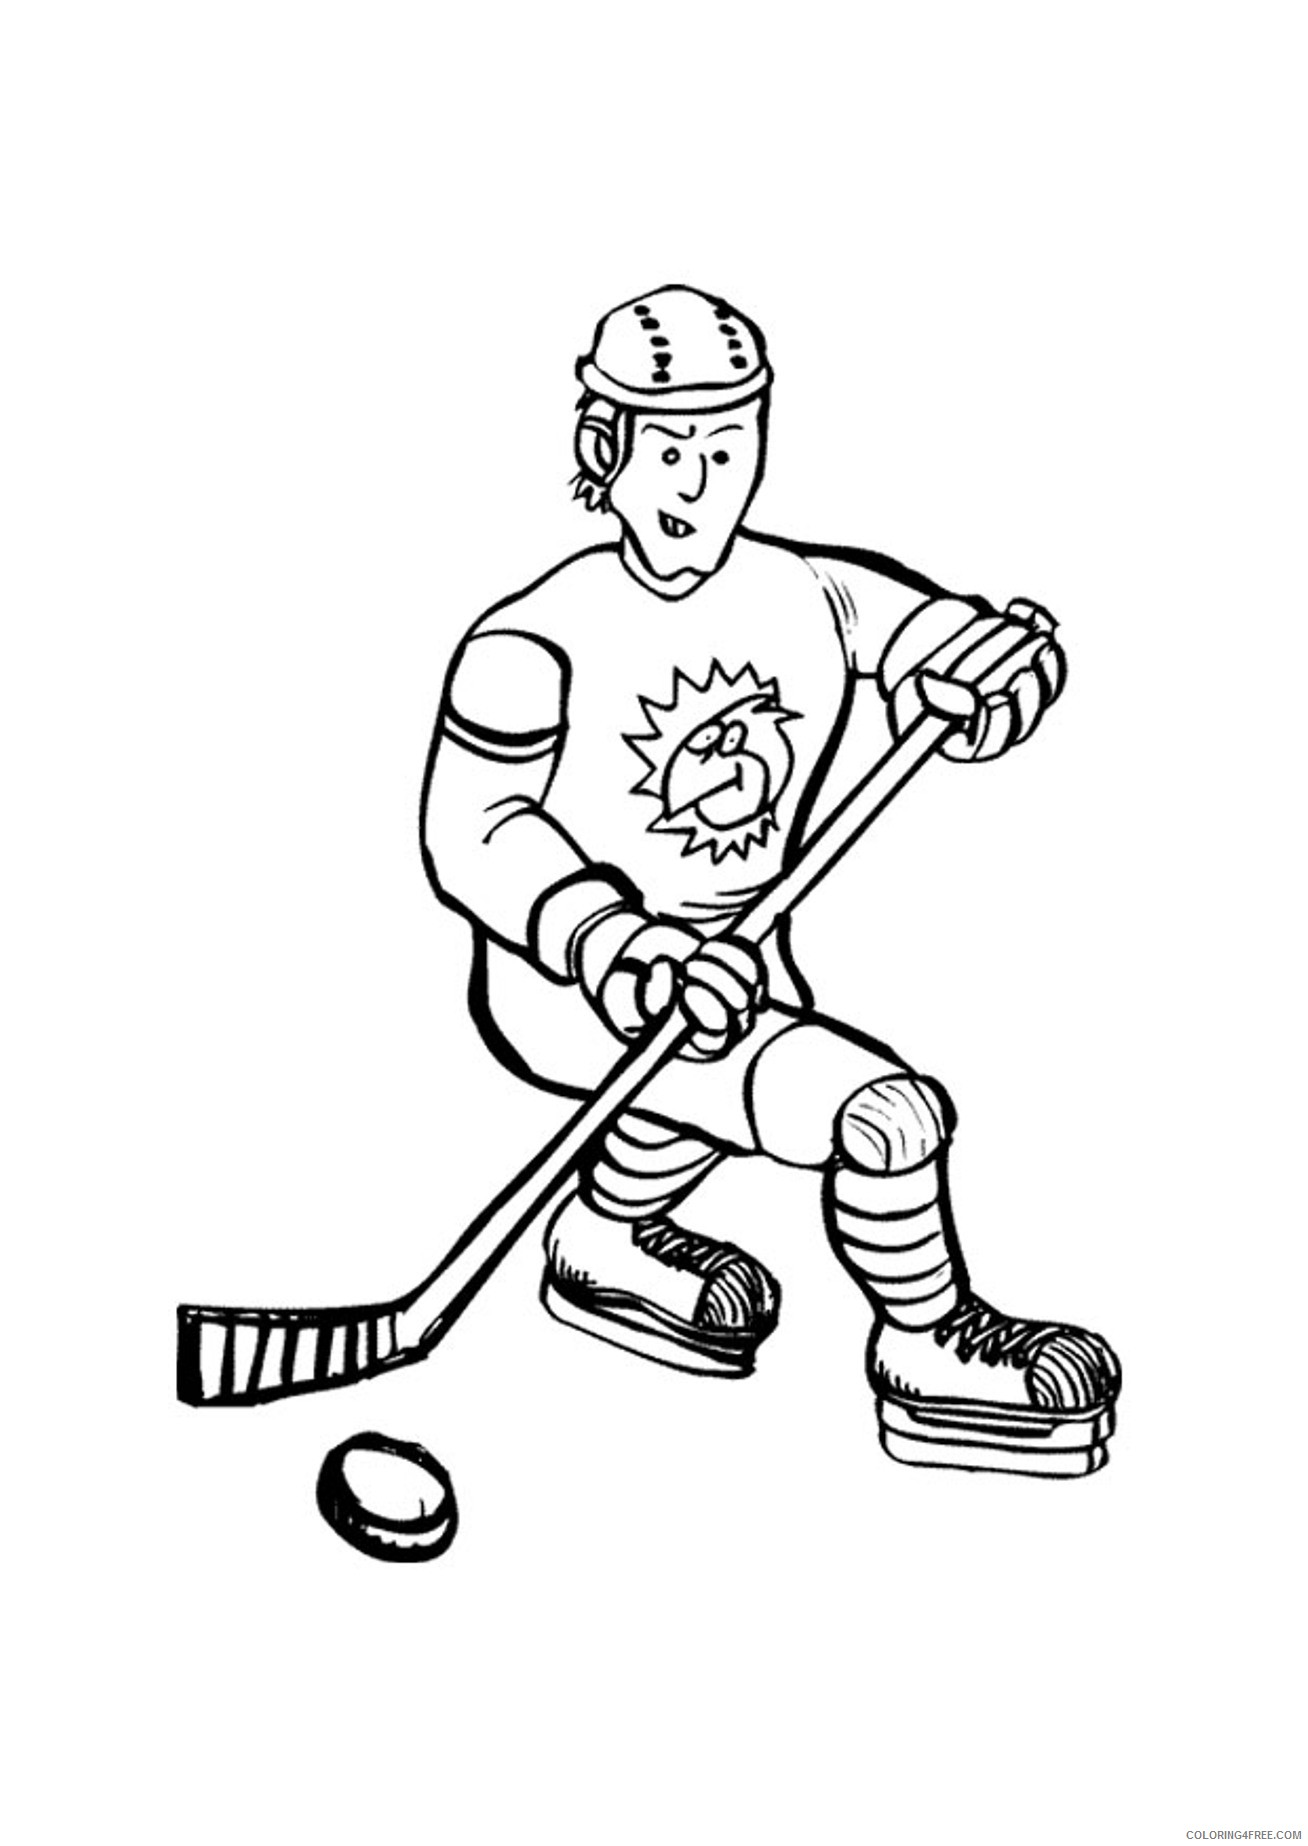 printable hockey coloring pages Coloring4free